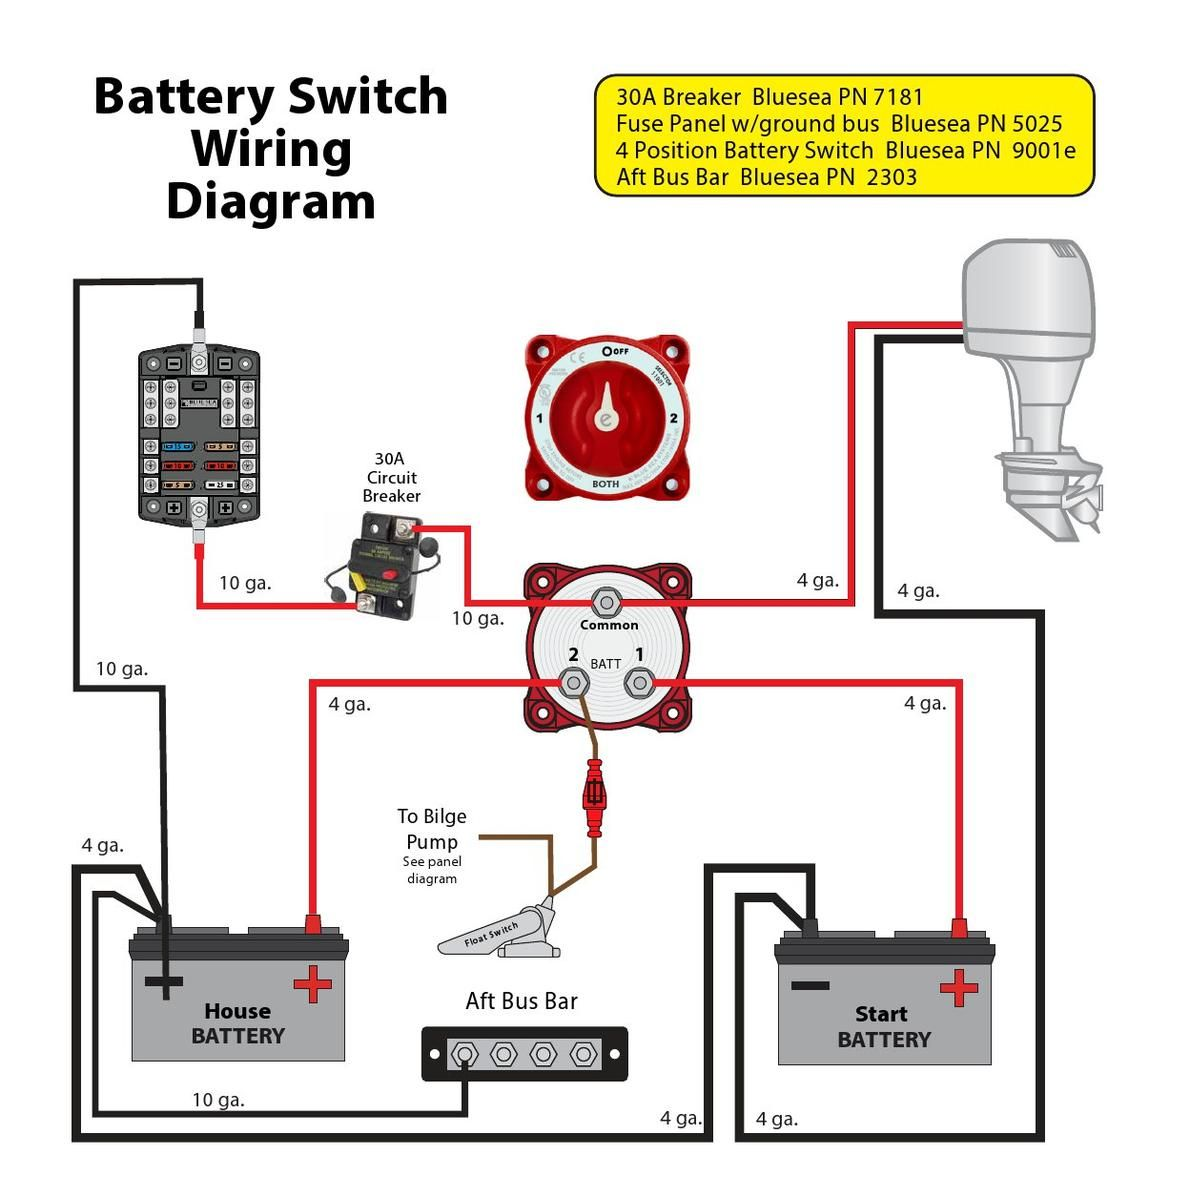 8e54026ba08f6314e4e2736dff4fc6e4 newbie switch panel & wiring questions the hull truth boating boat dual battery wiring diagram at edmiracle.co